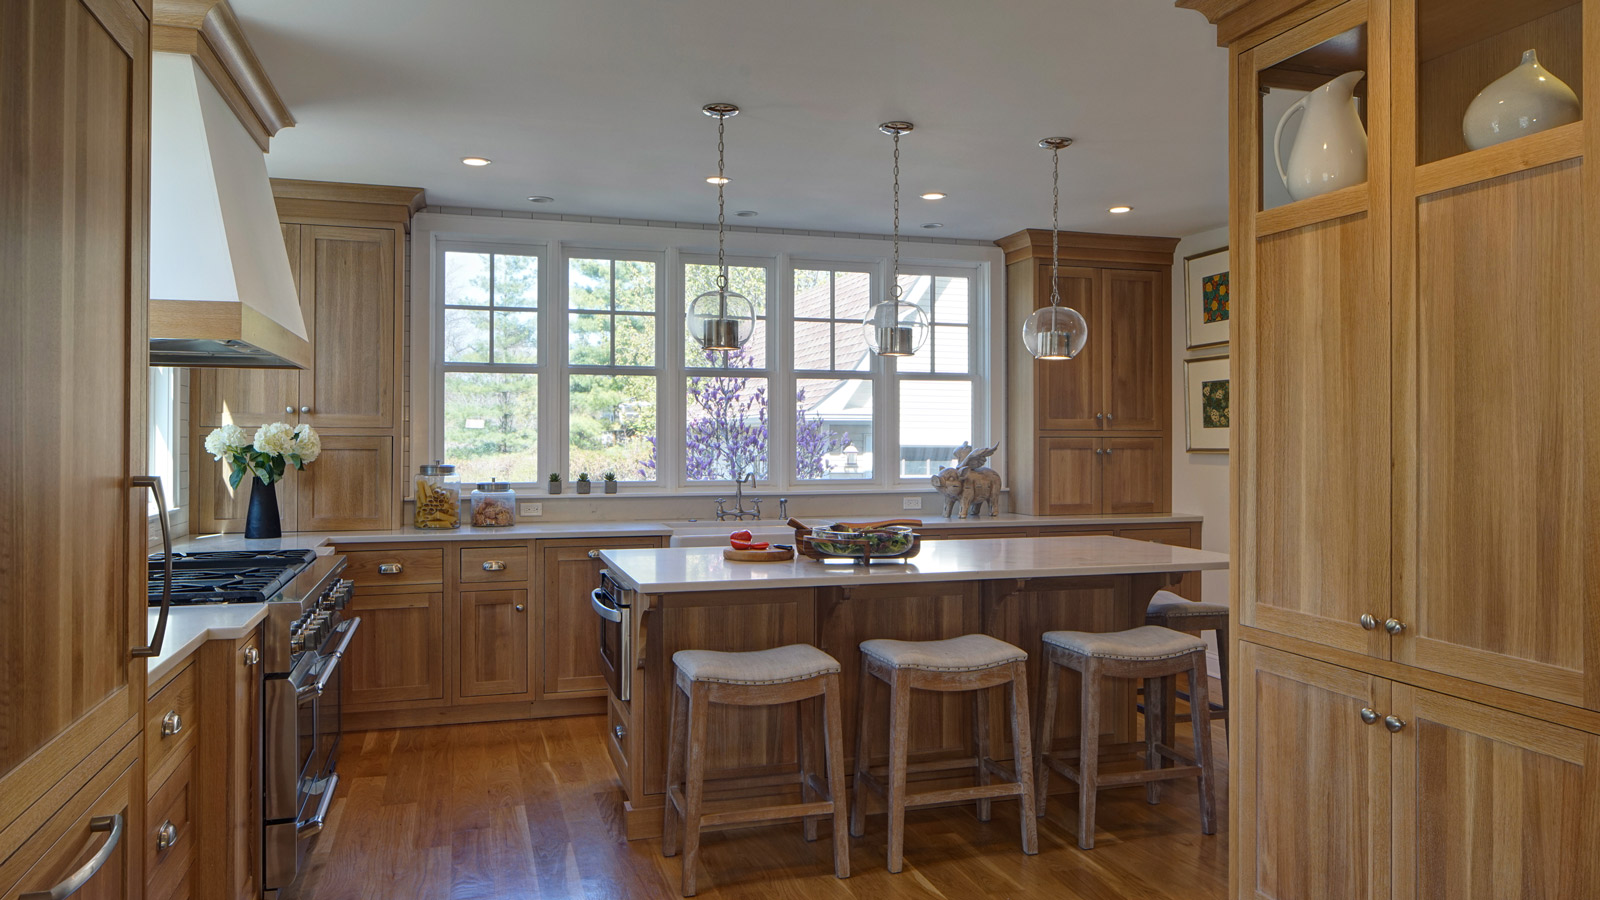 1600-x-900-Traditional-Kitchen-with-a-Fresh-Perspective-Lombard-IL-drury-design3